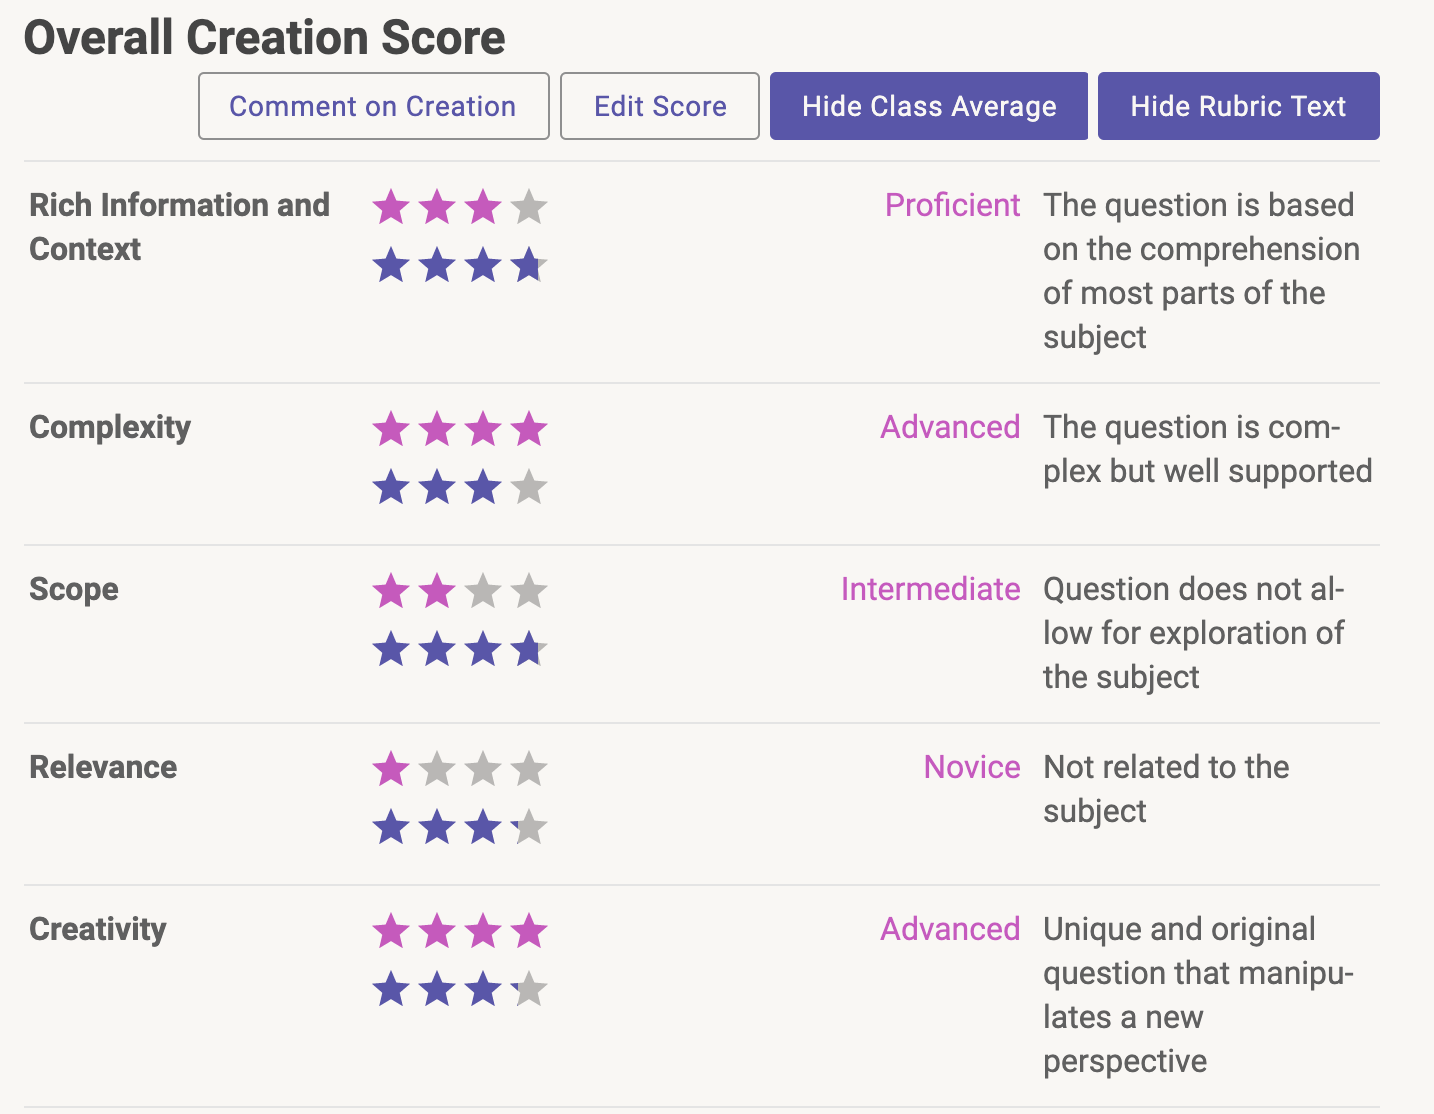 Overall Creation Score